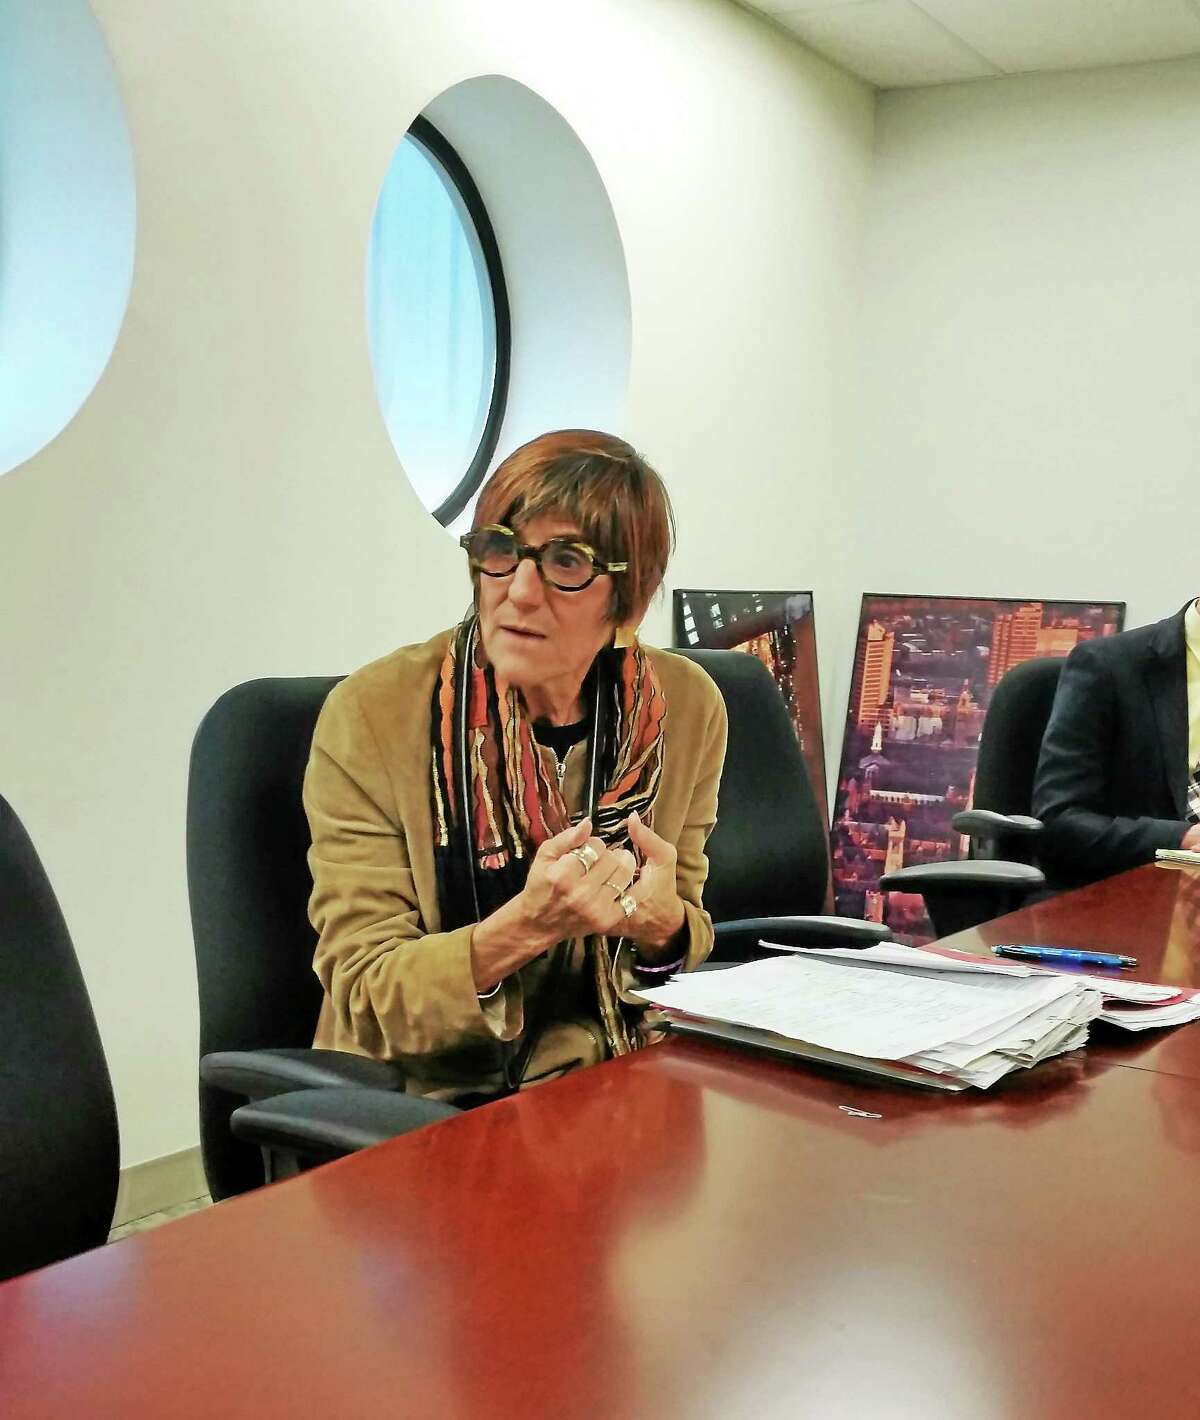 (Shahid Abul-Karim- New Haven Register) U.S. Rep. Rosa DeLauro, D-3, who is seeking reelection, speaks to the New Haven Register editorial board.